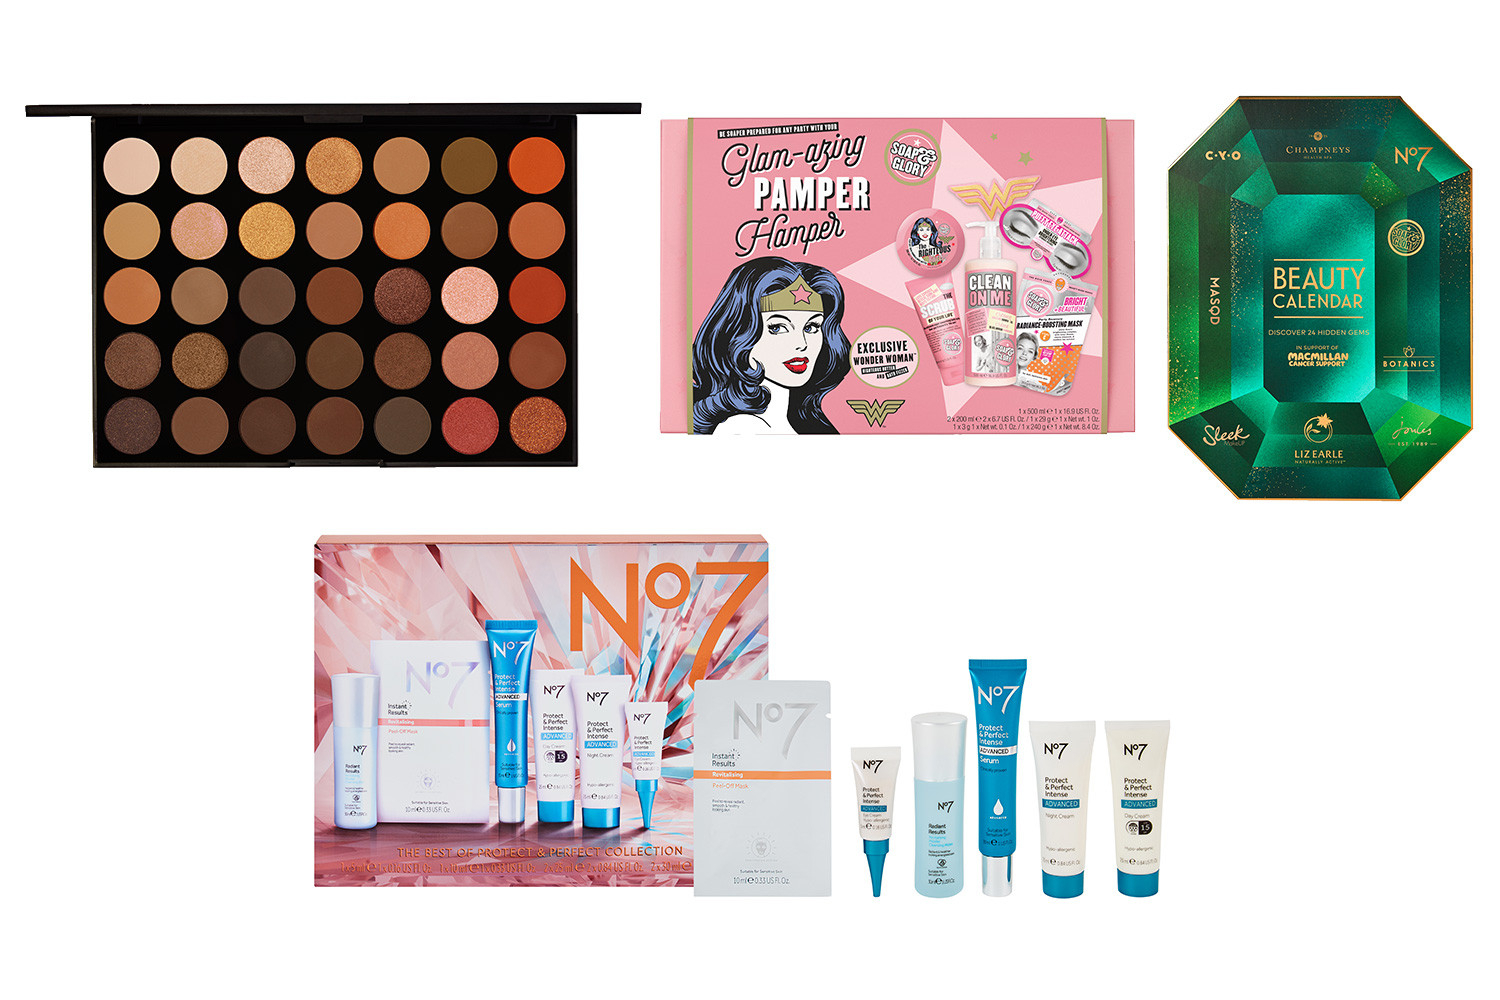 Boots Reveal Their Top Ten Gifts For Christmas And They